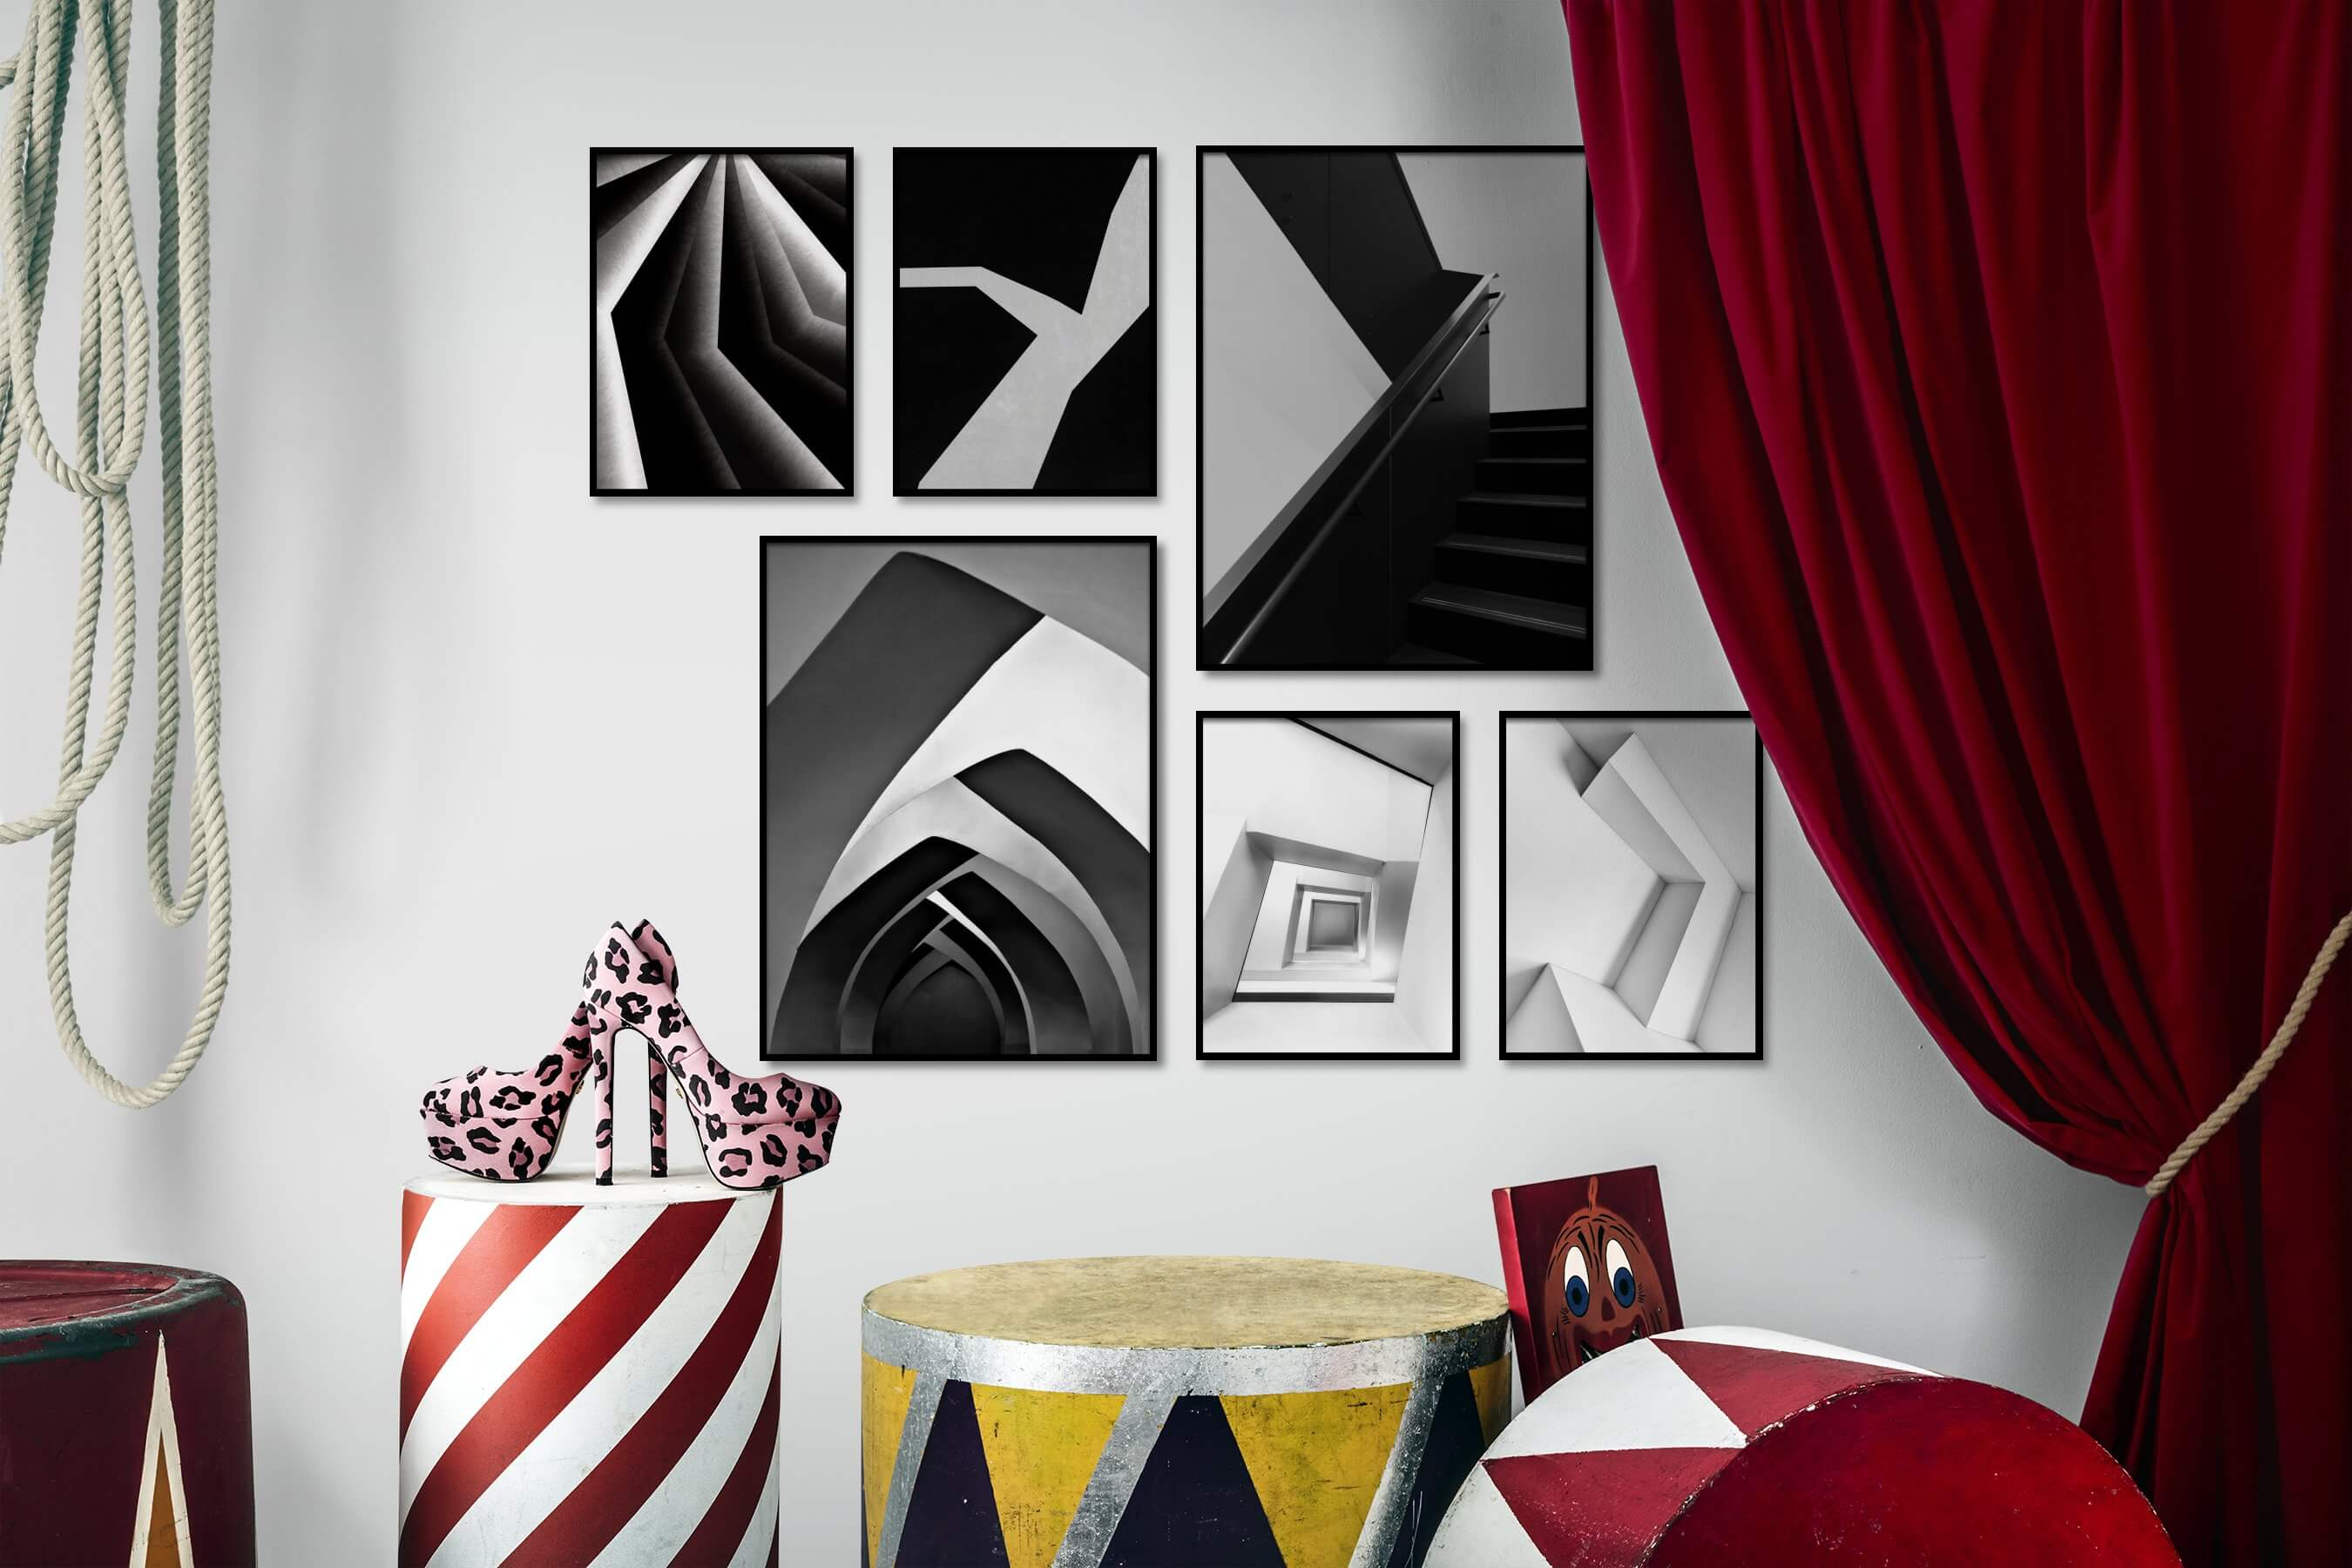 Gallery wall idea with six framed pictures arranged on a wall depicting Black & White, For the Moderate, Dark Tones, and For the Minimalist